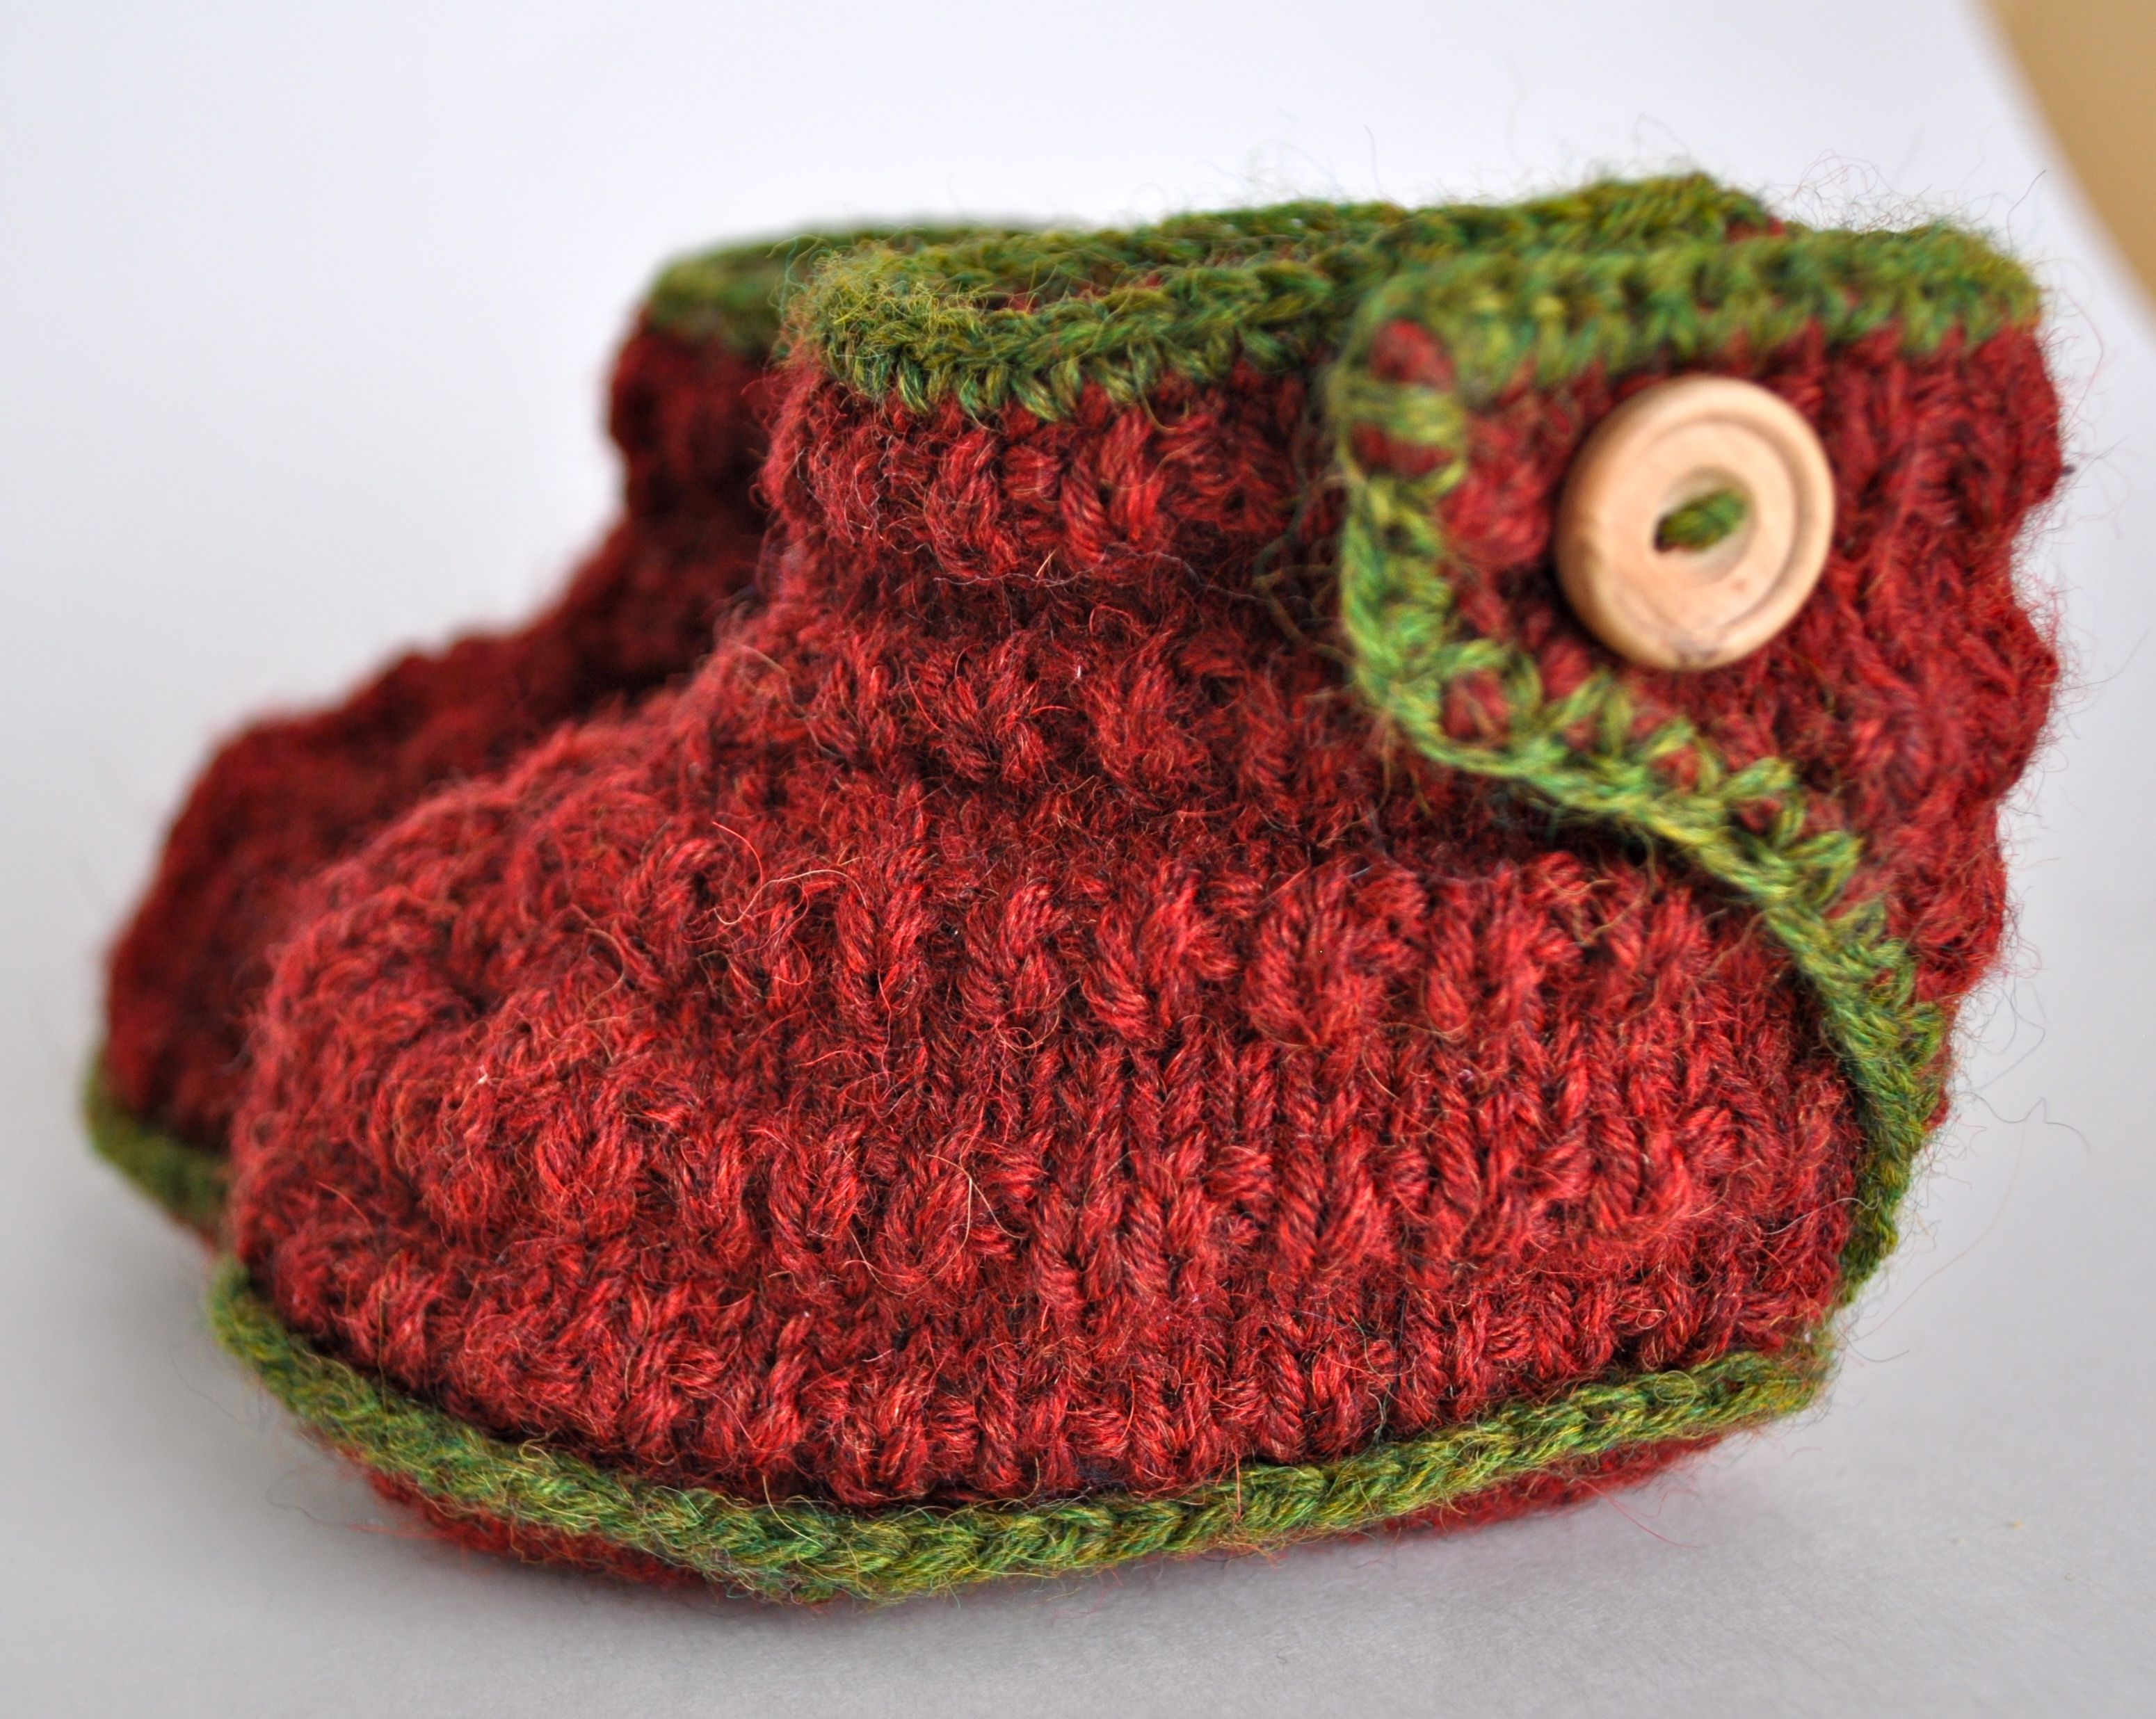 Hand knit baby booties in red strawberry style